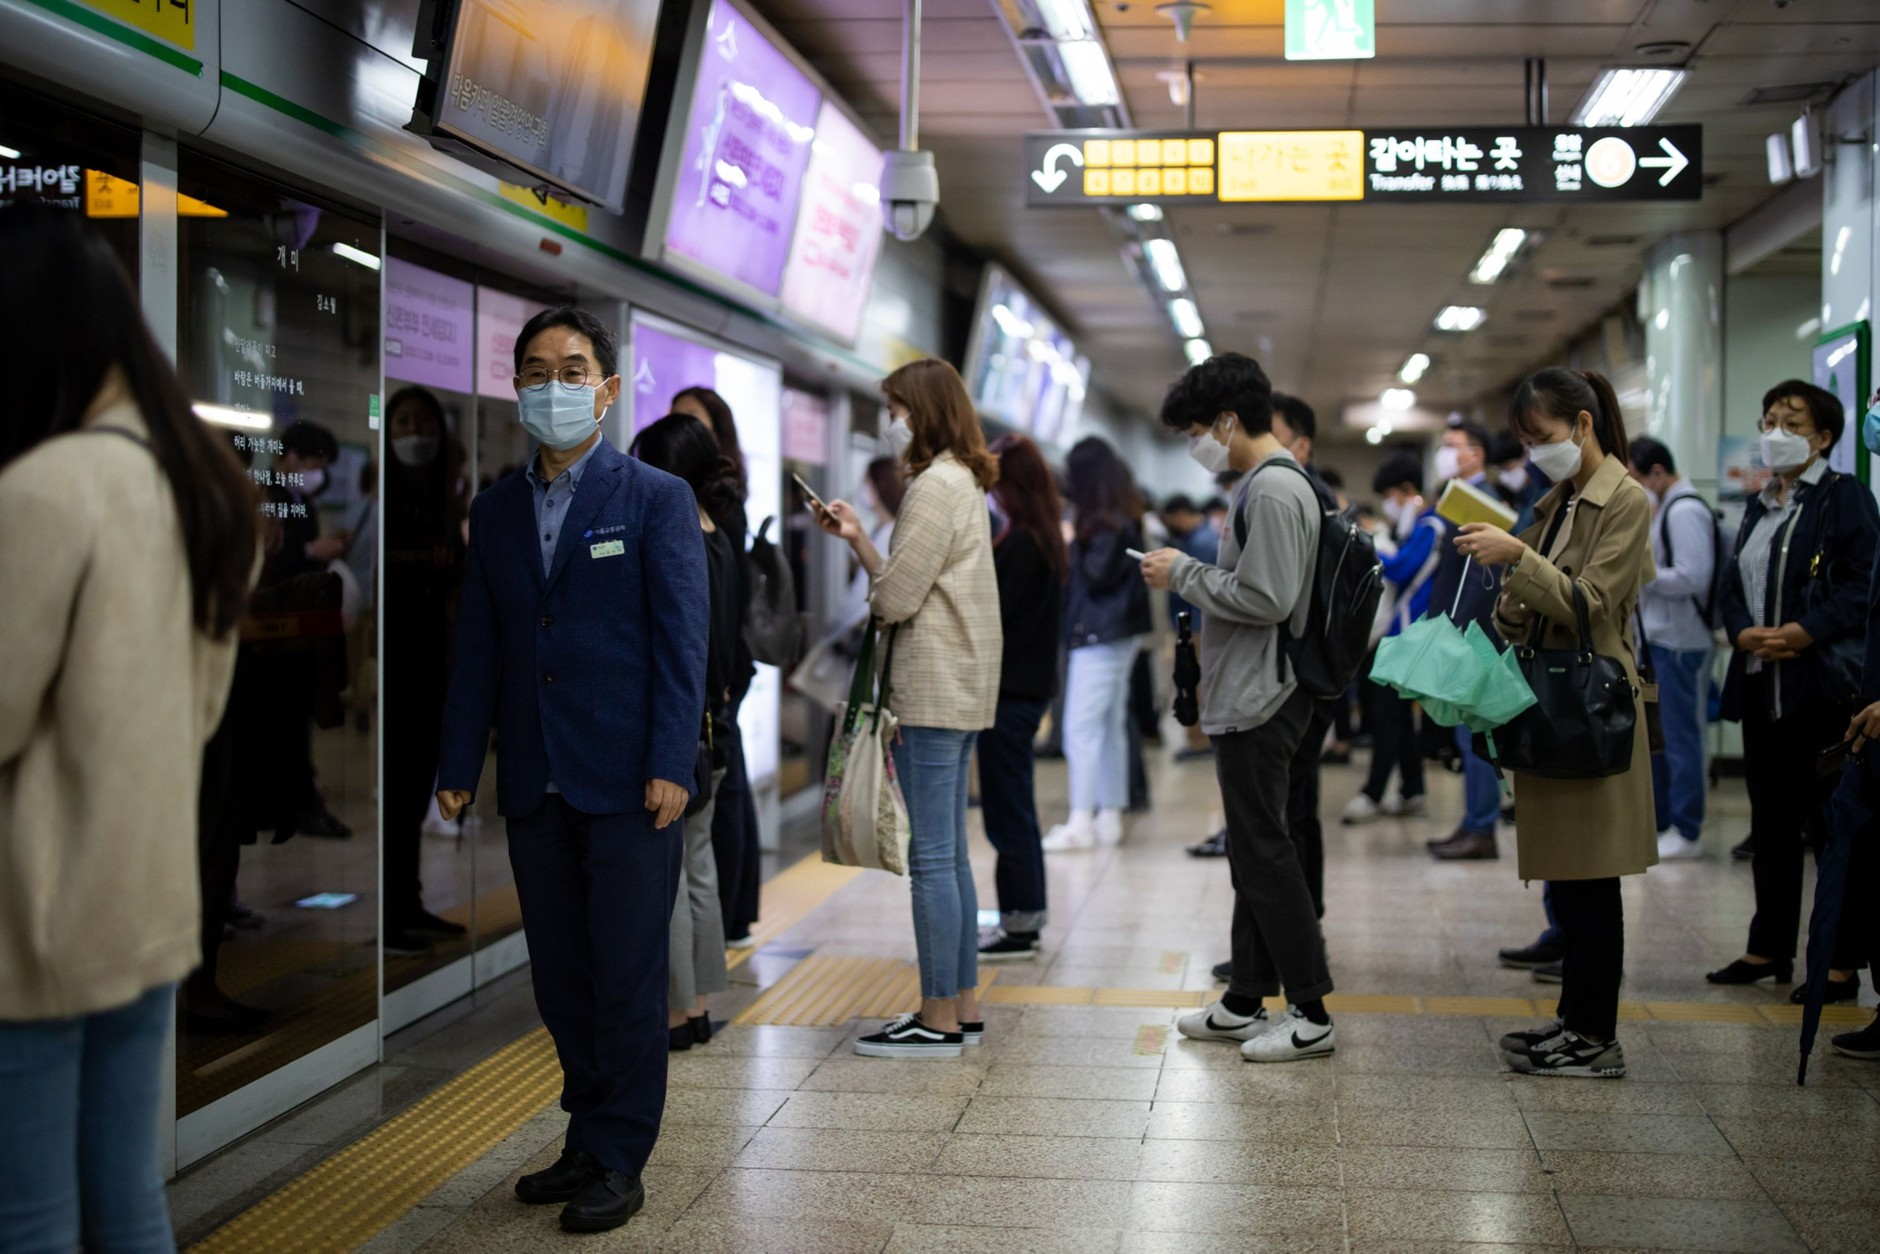 How to Safely Travel on Mass Transit During Coronavirus